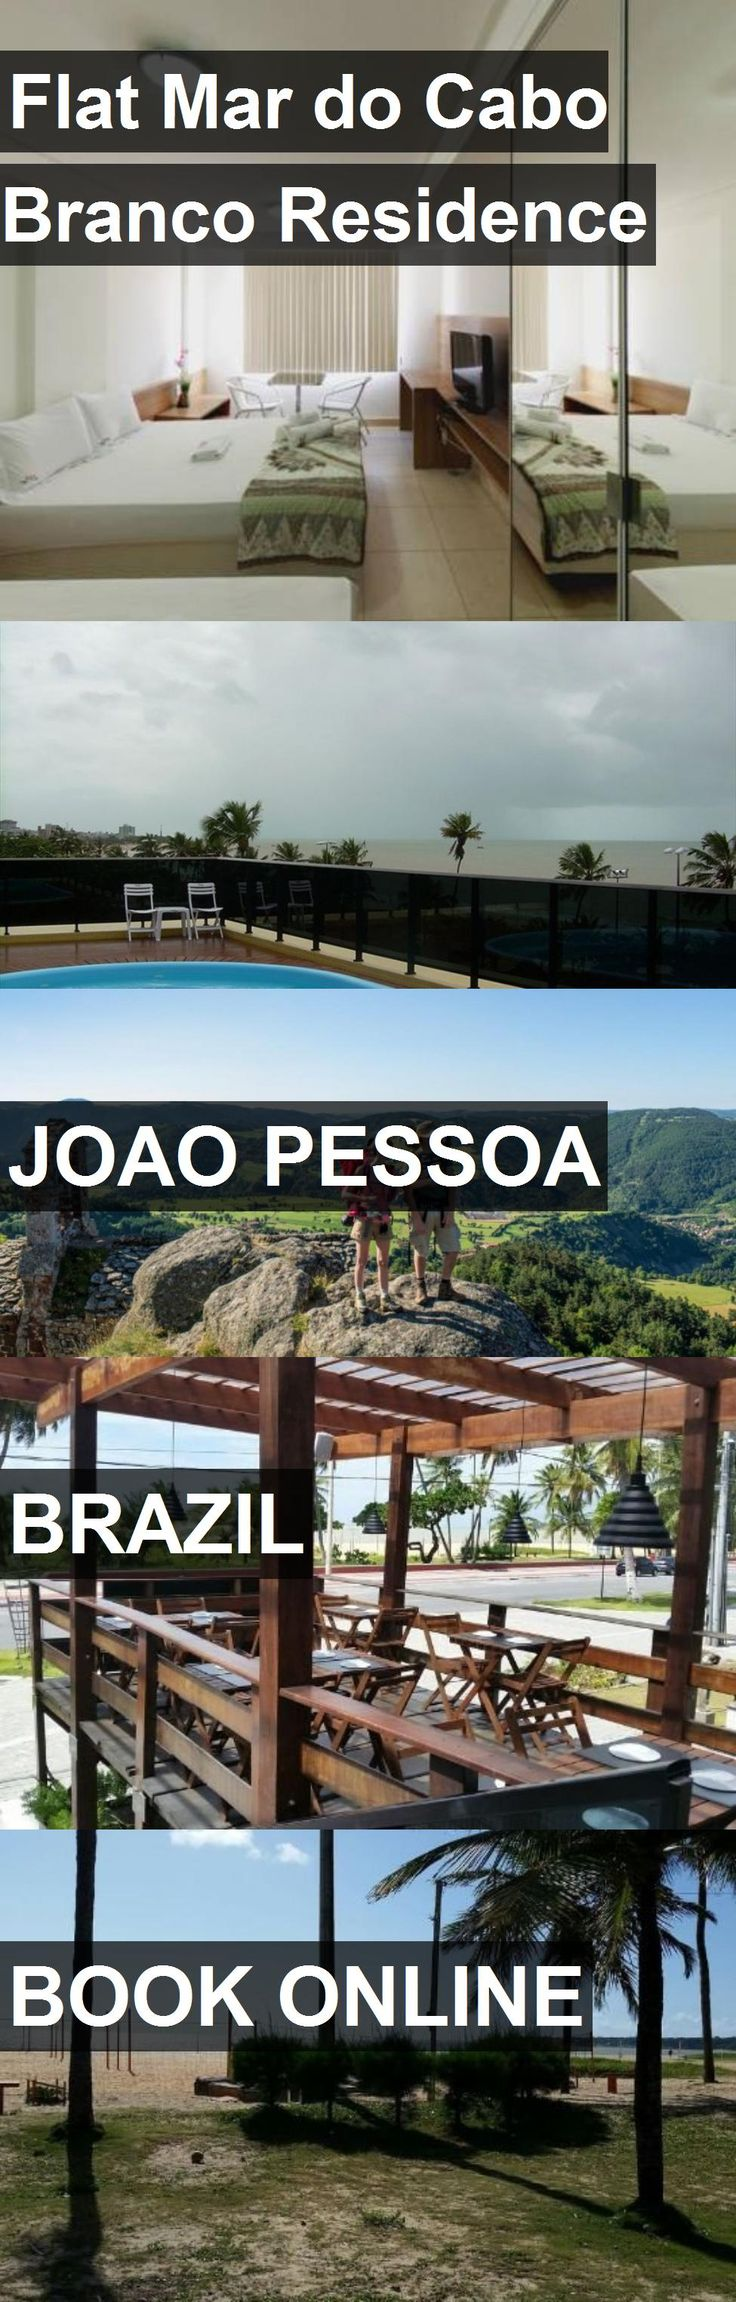 Hotel Flat Mar do Cabo Branco Residence in Joao Pessoa, Brazil. For more information, photos, reviews and best prices please follow the link. #Brazil #JoaoPessoa #travel #vacation #hotel